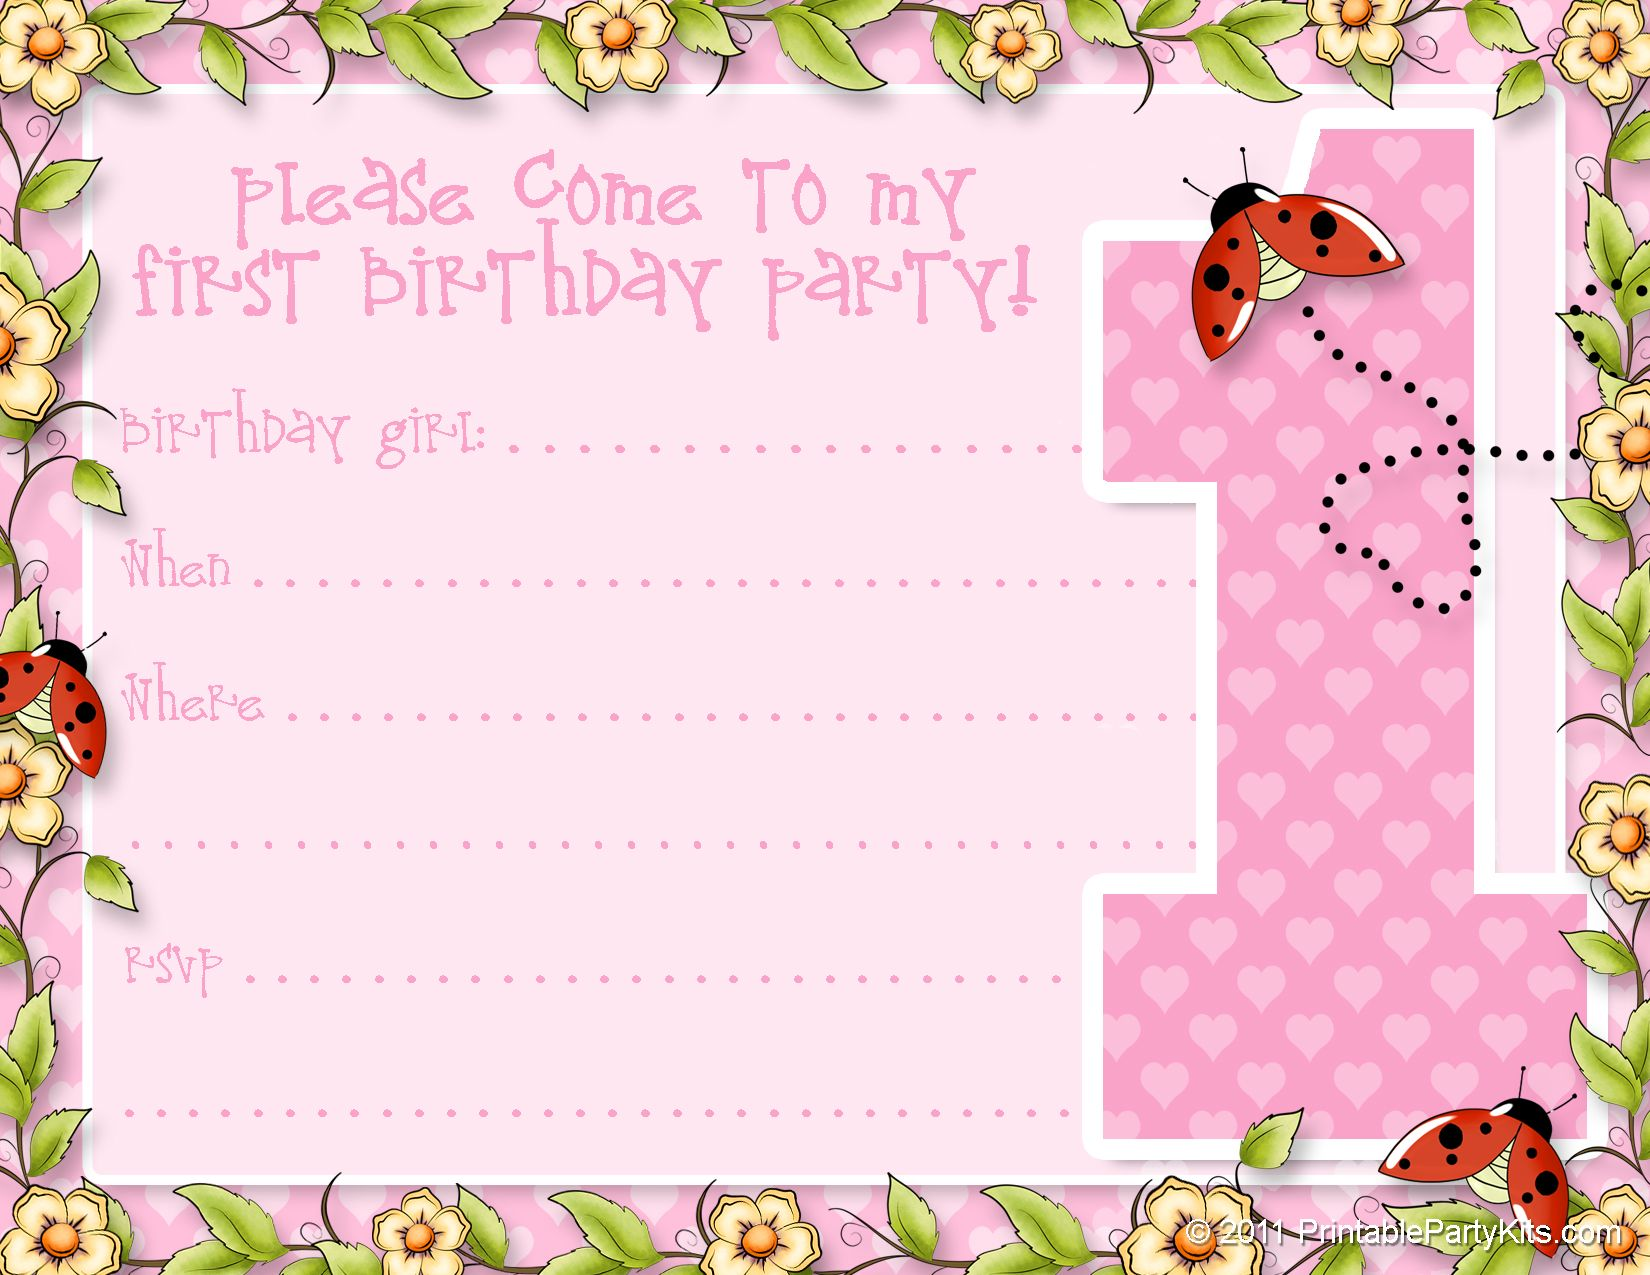 FREE PRINTABLE GIRLS 1ST BIRTHDAY INVITATION TEMPLATES Google